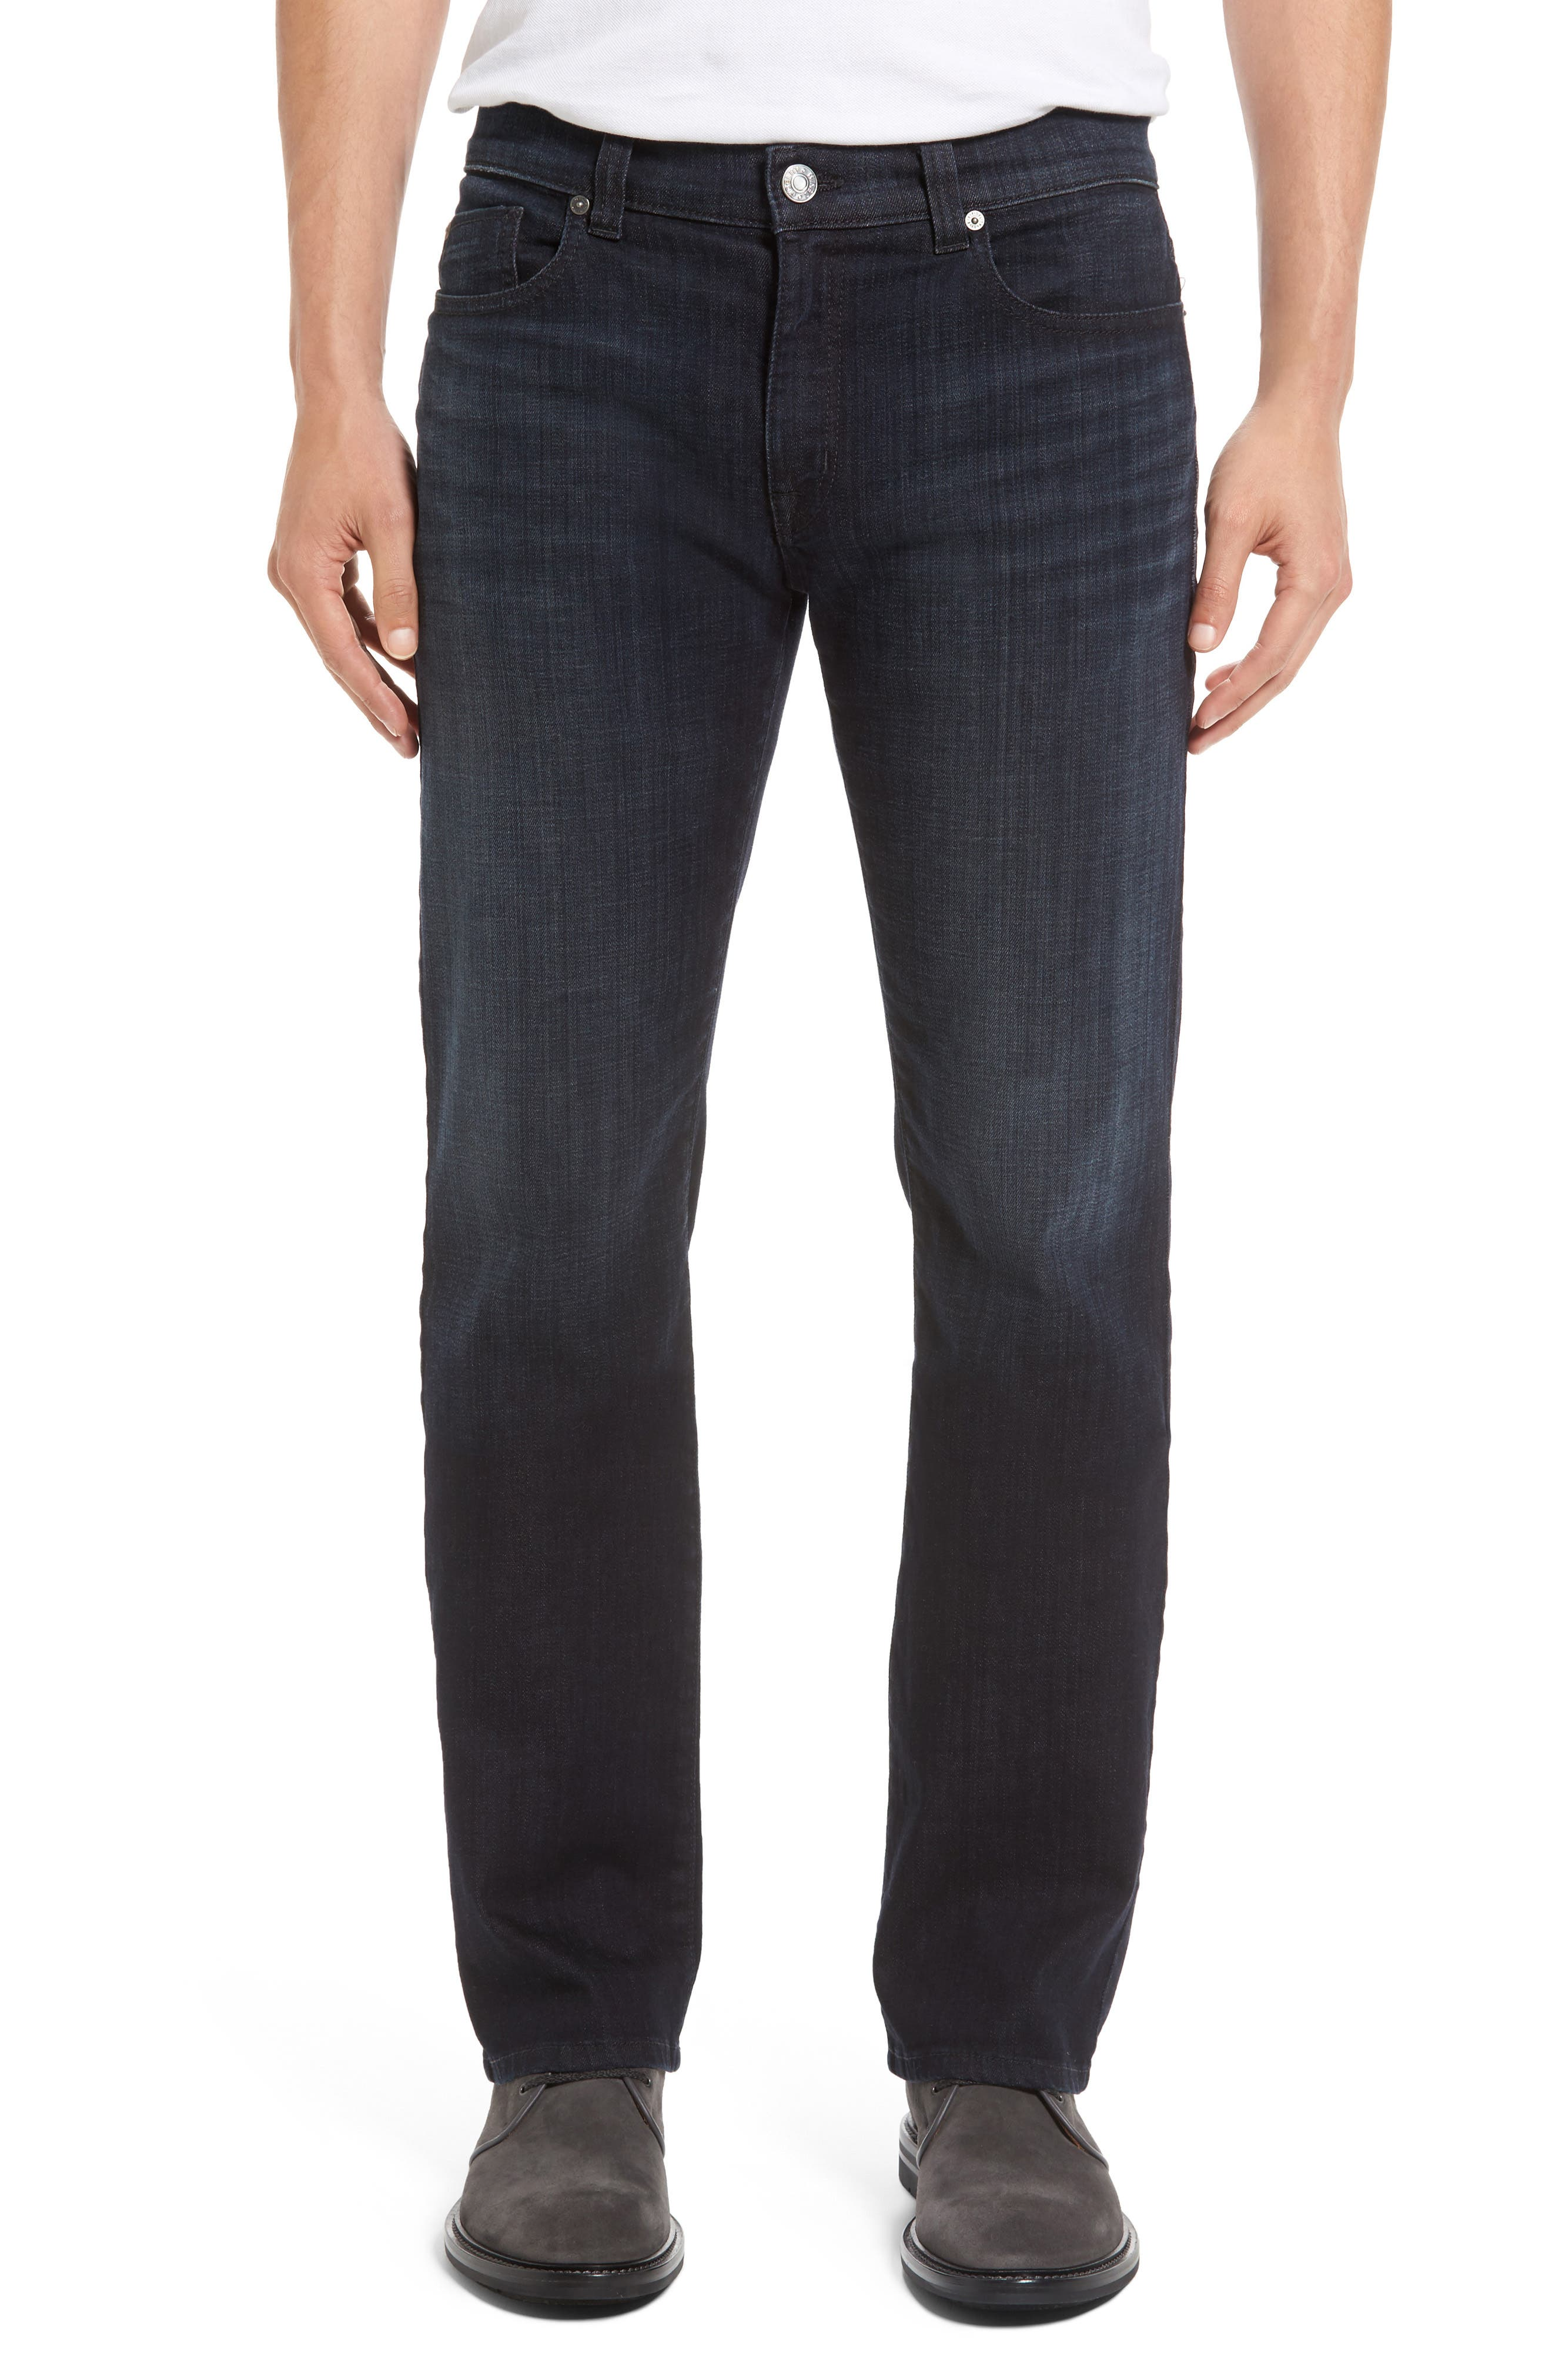 Main Image - Fidelity Denim 5011 Relaxed Fit Jeans (Harvard)